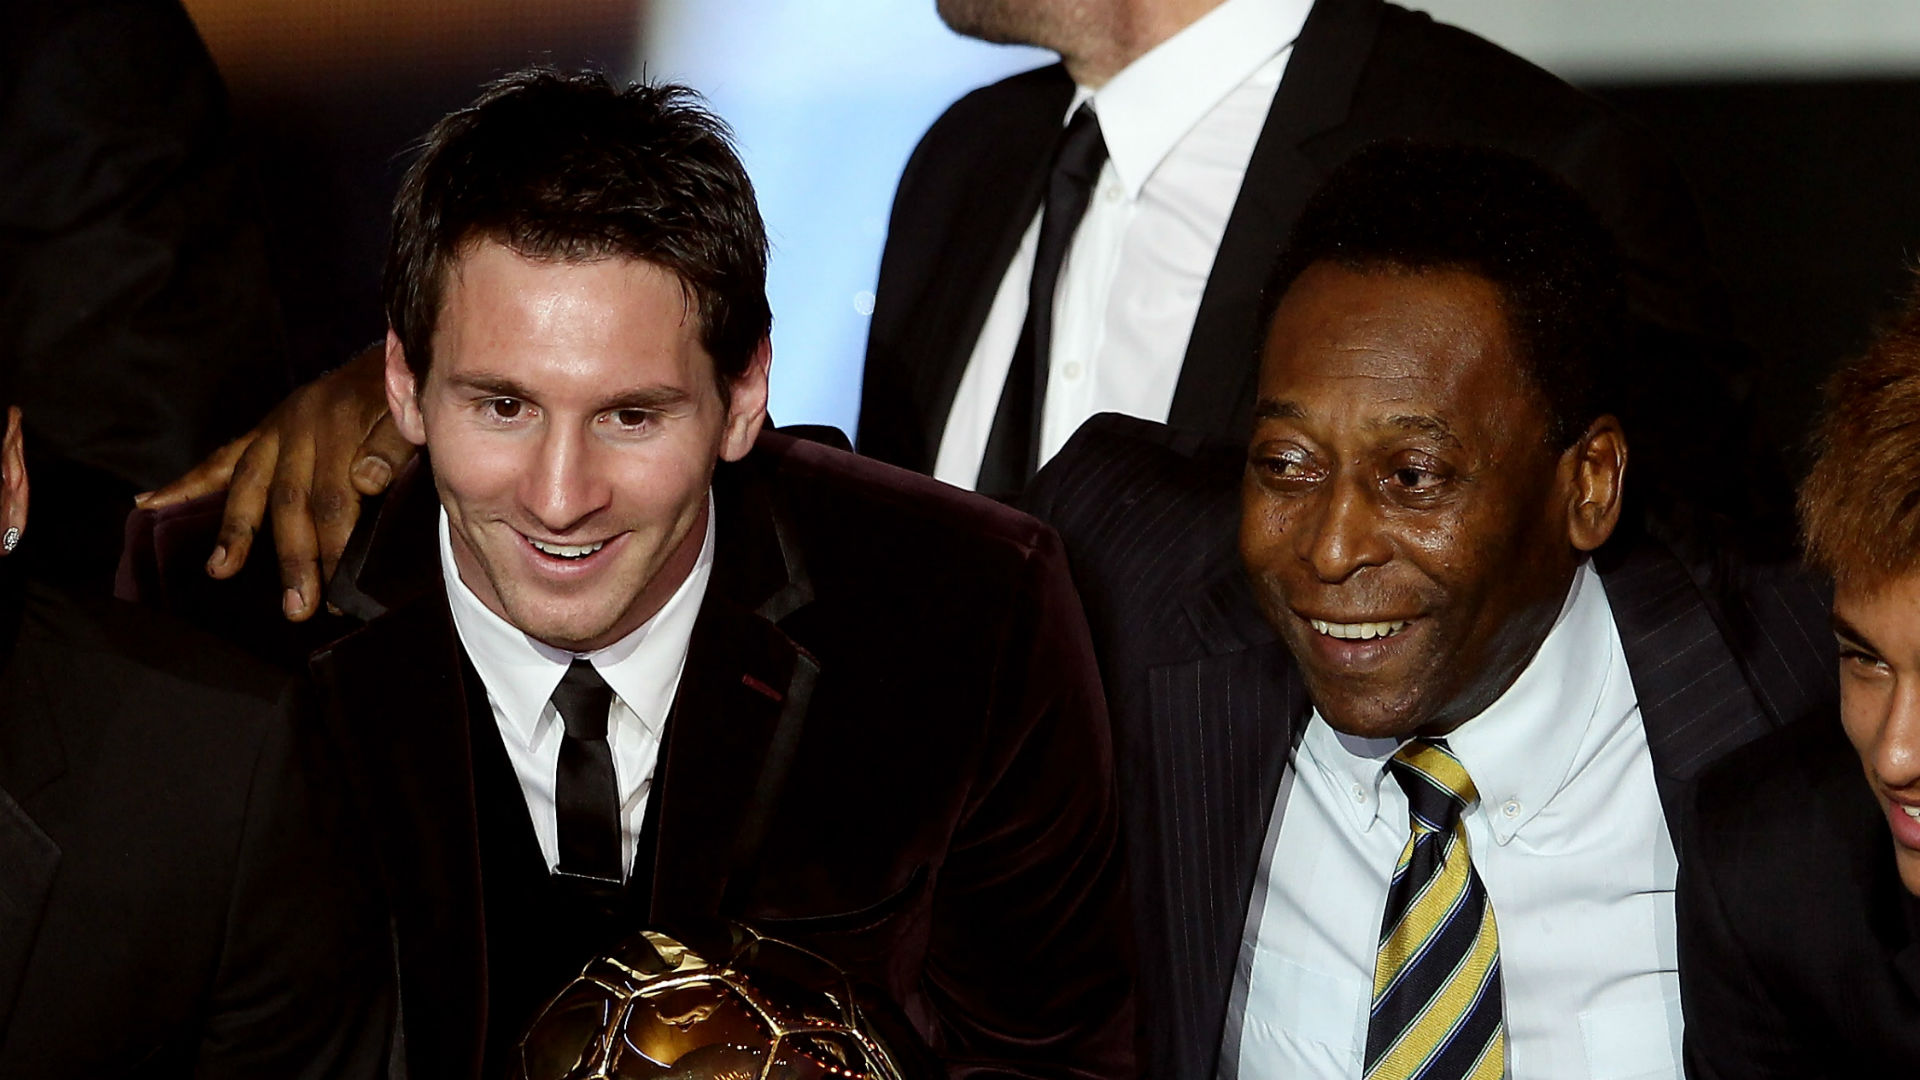 One skill, one leg, can't head - Pele's damning assessment of Messi